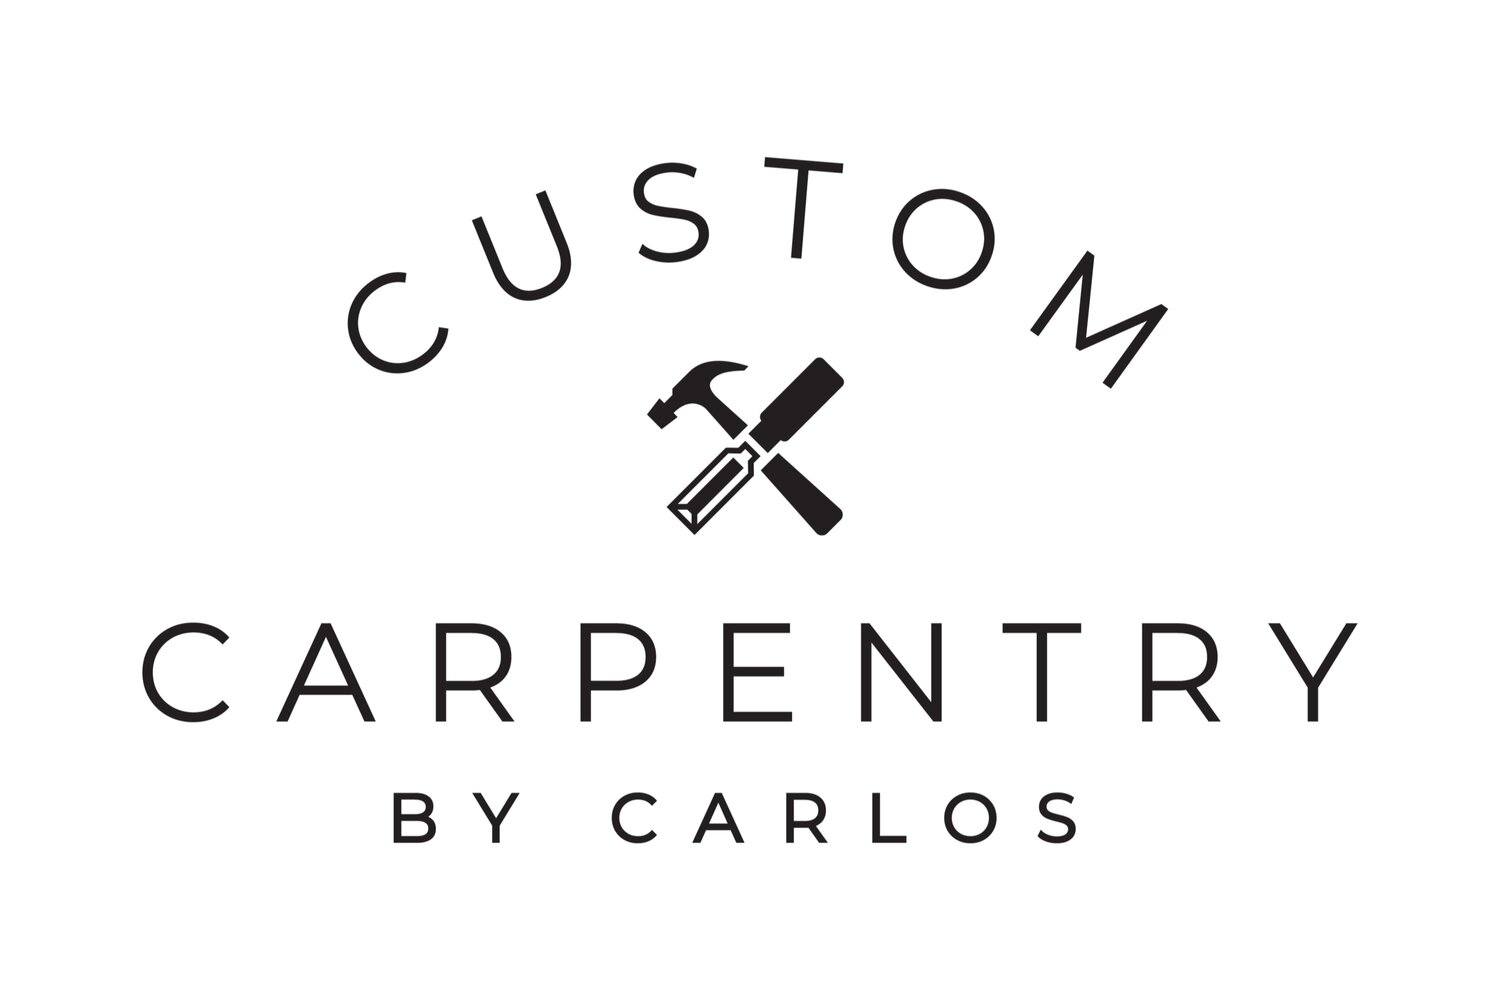 Custom Carpentry by Carlos